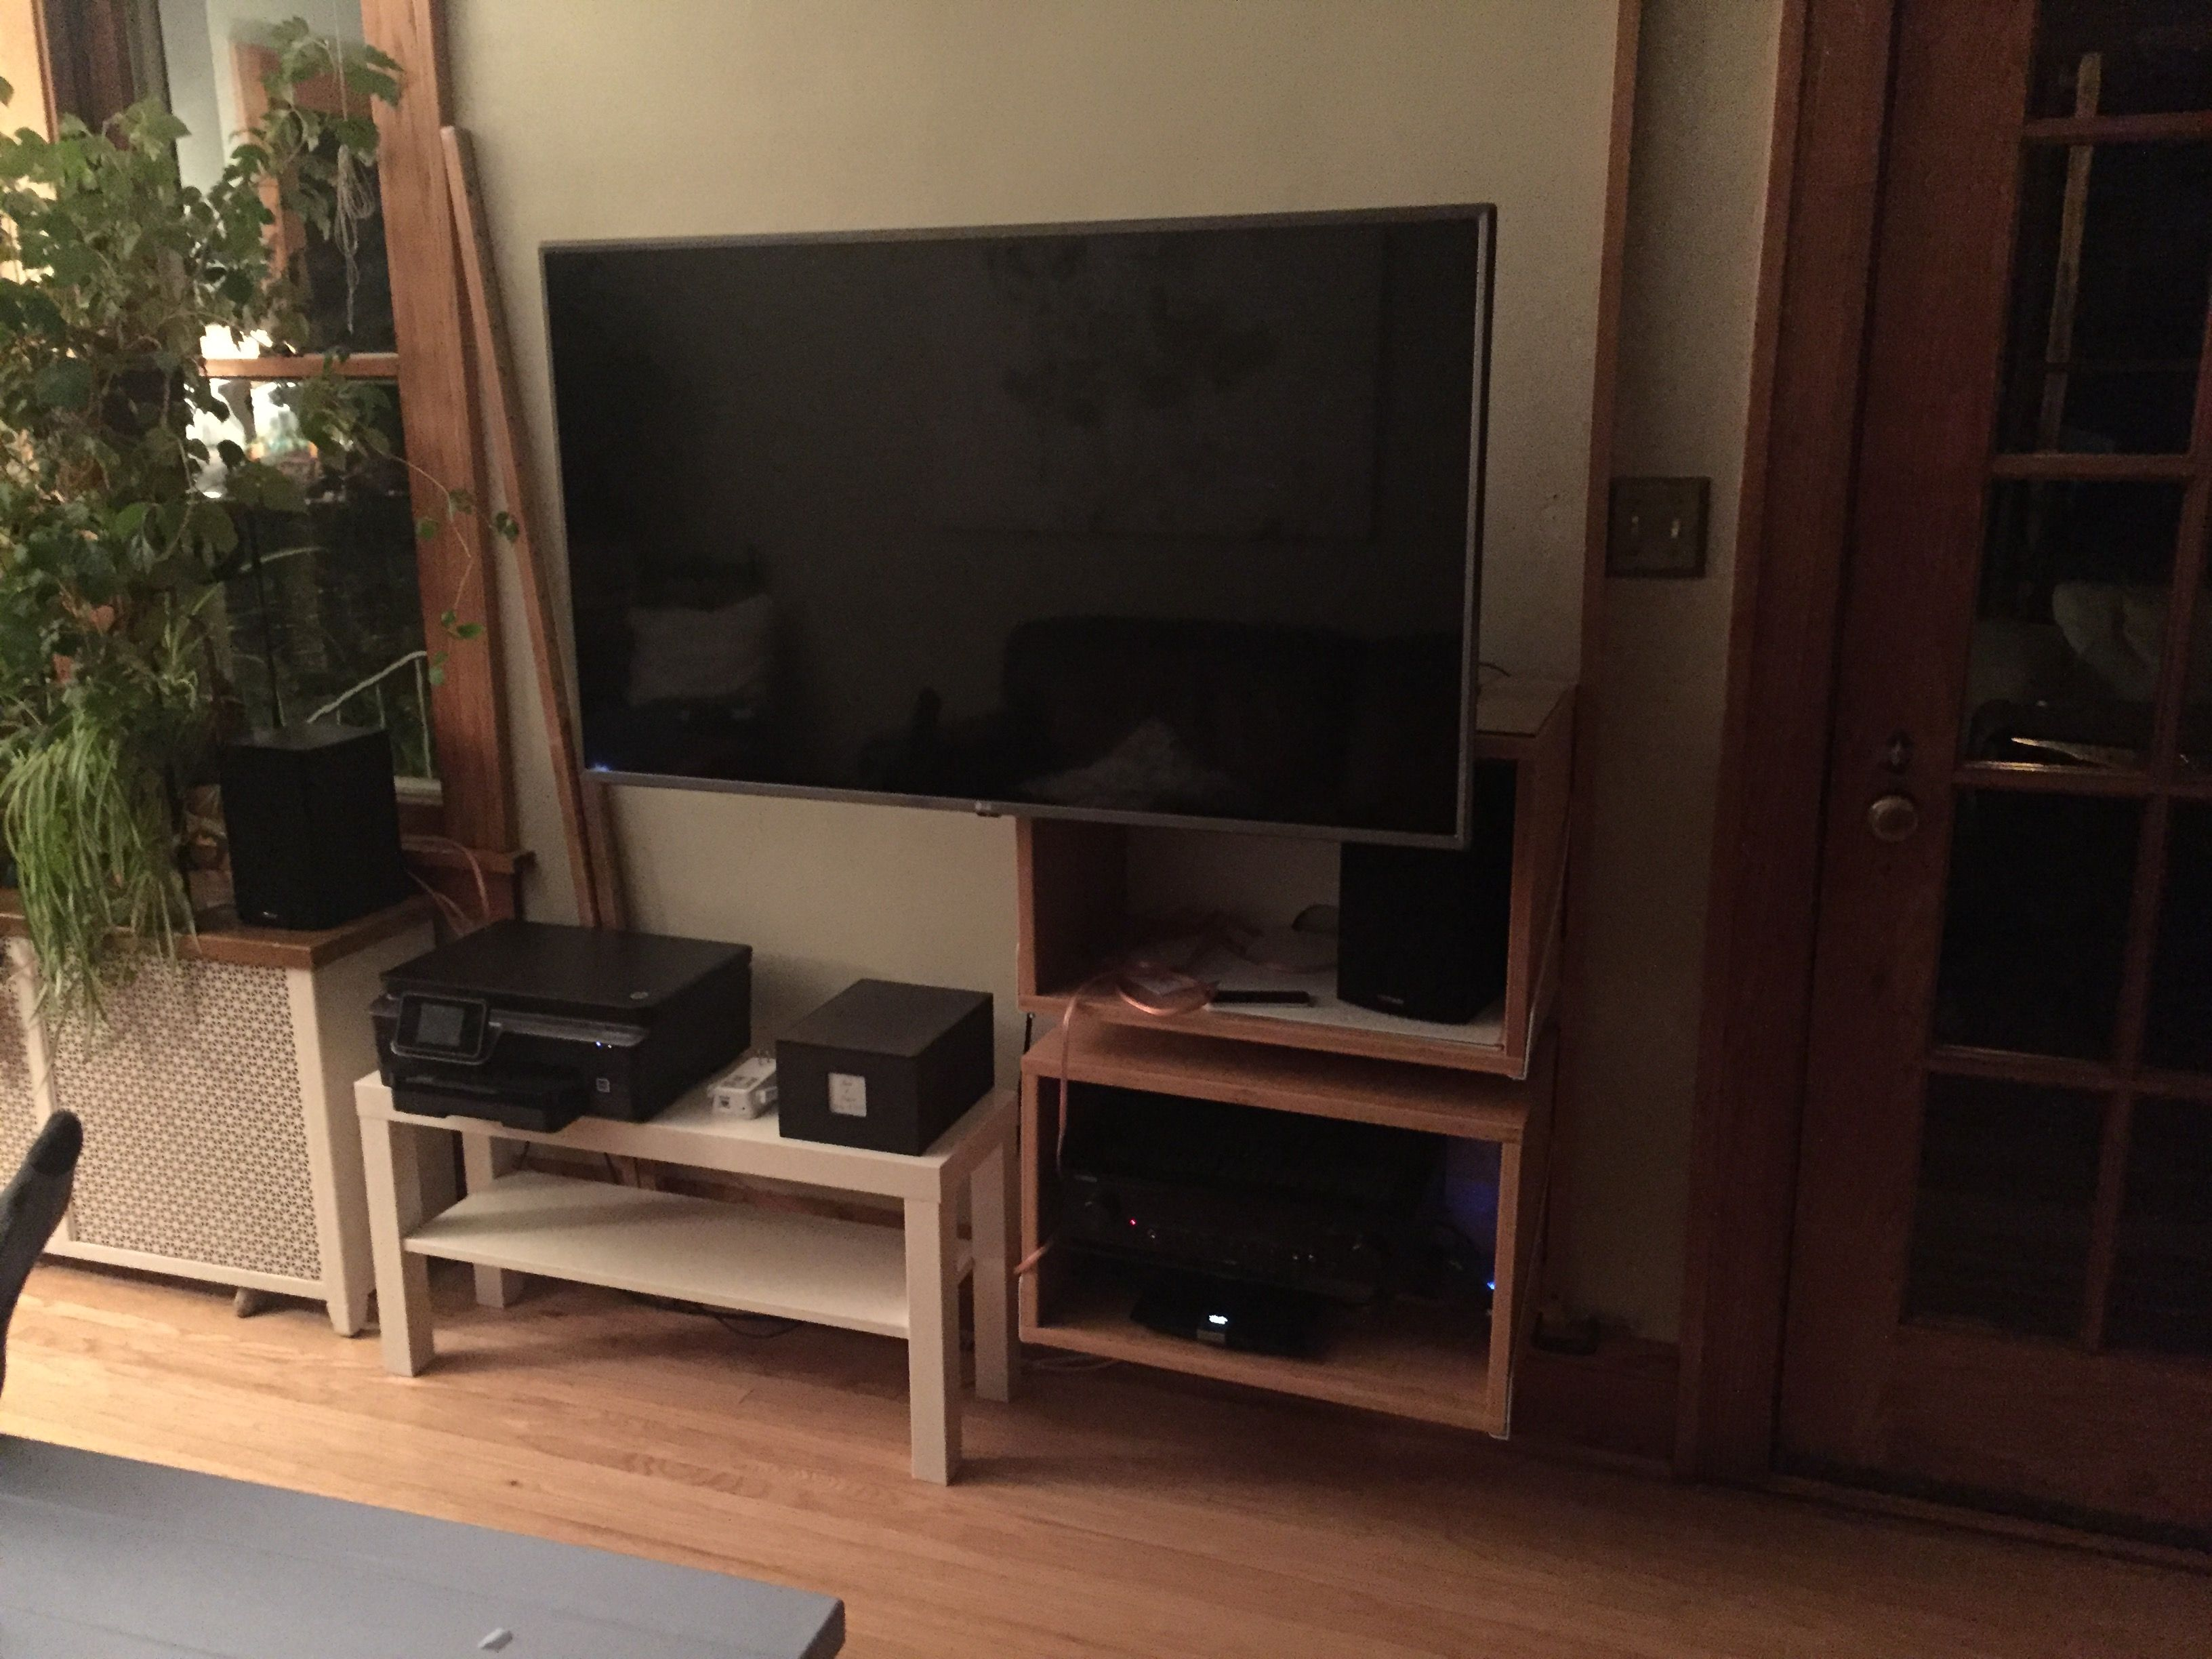 Ikea svalnas wall solution media wall tv entertainment center